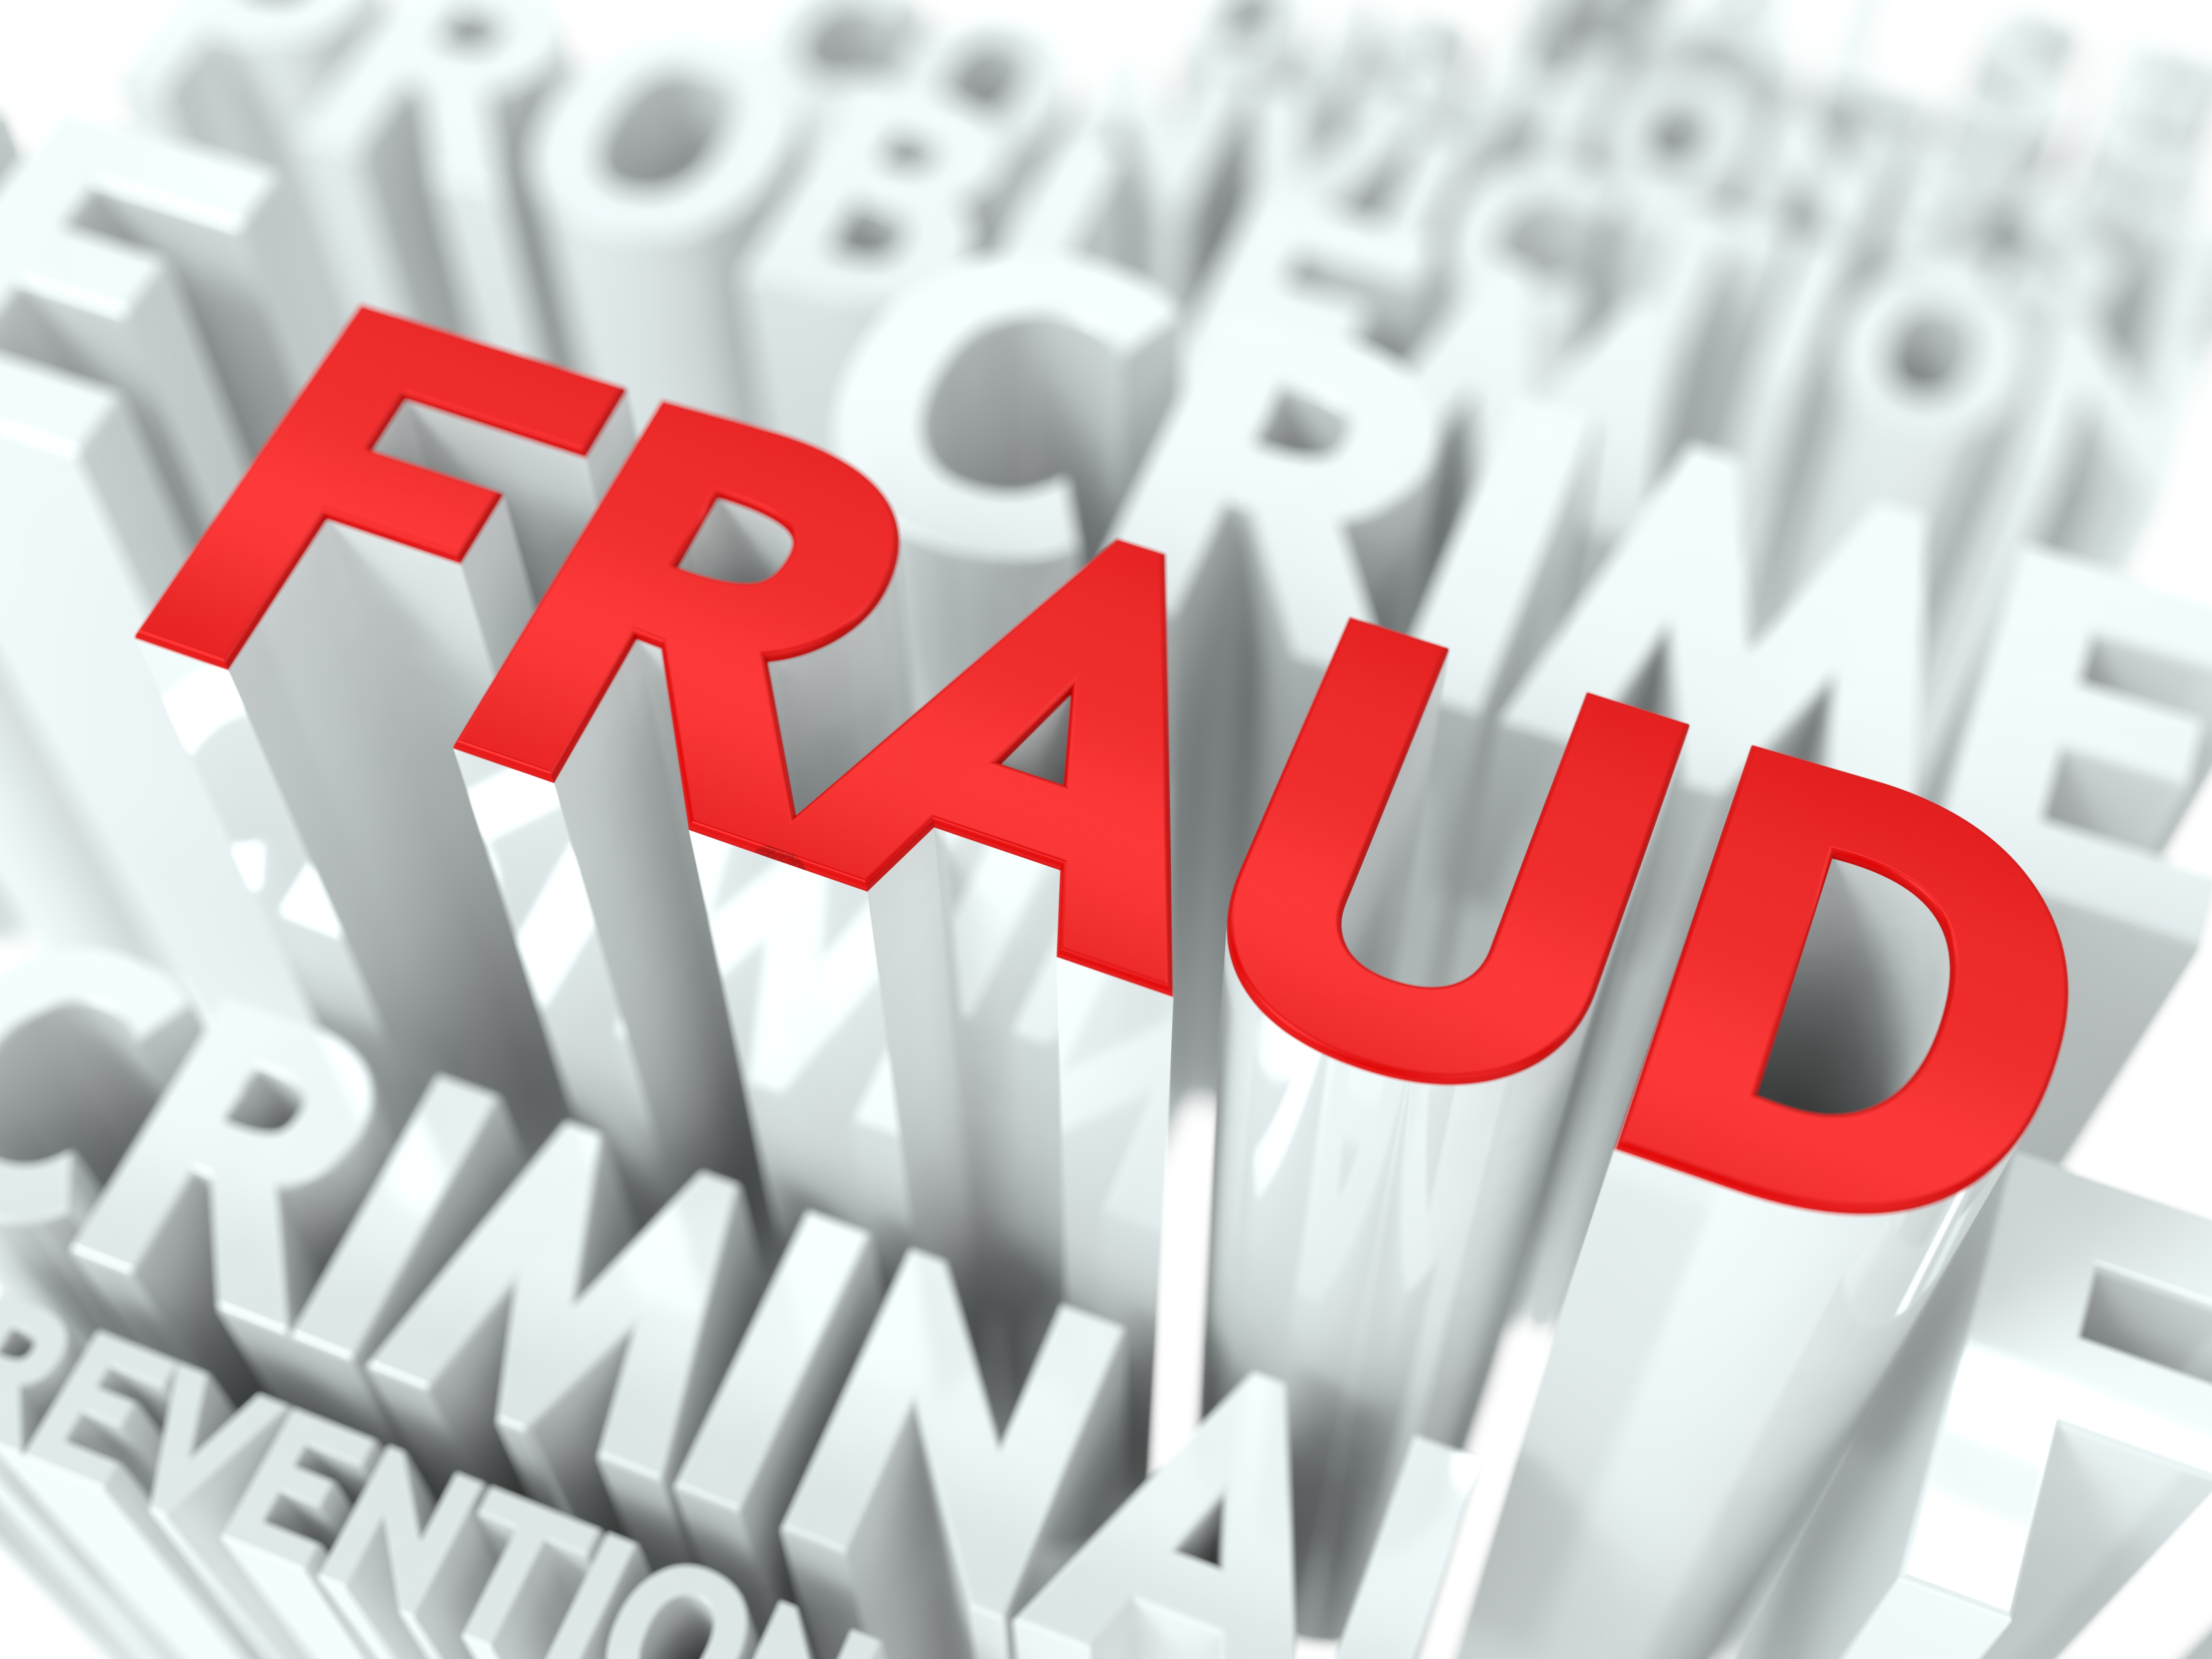 Credit Union Fraud Lands Ceo In Jail